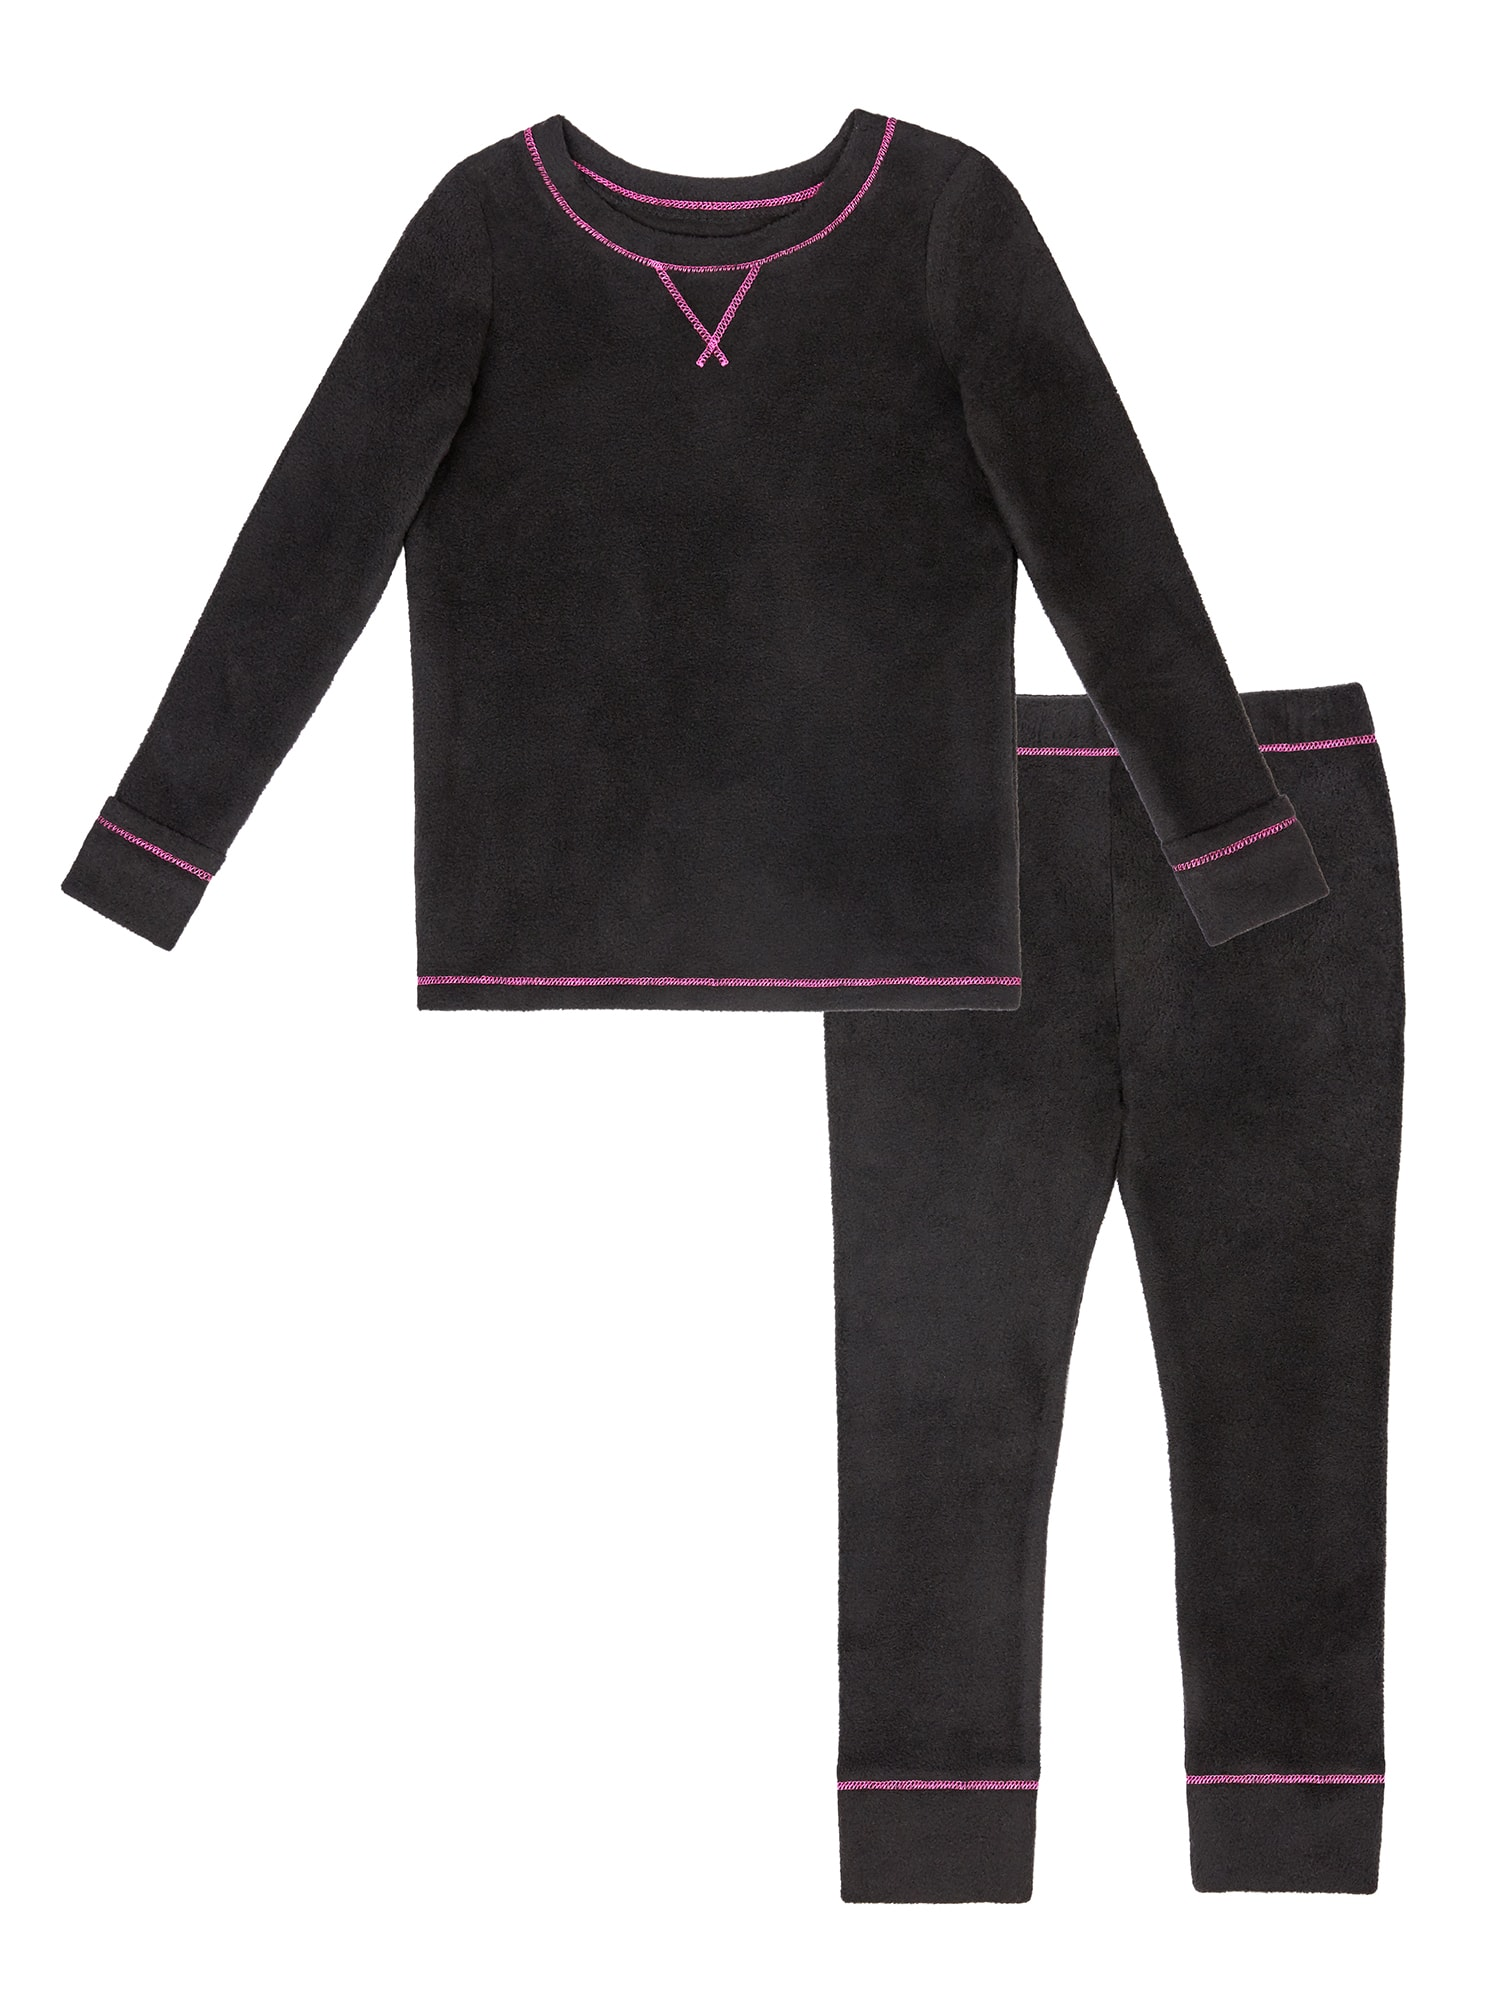 ClimateRight by Cuddl Duds Toddler Girl Stretch Fleece Long Underwear, 2pc Set - $5.50